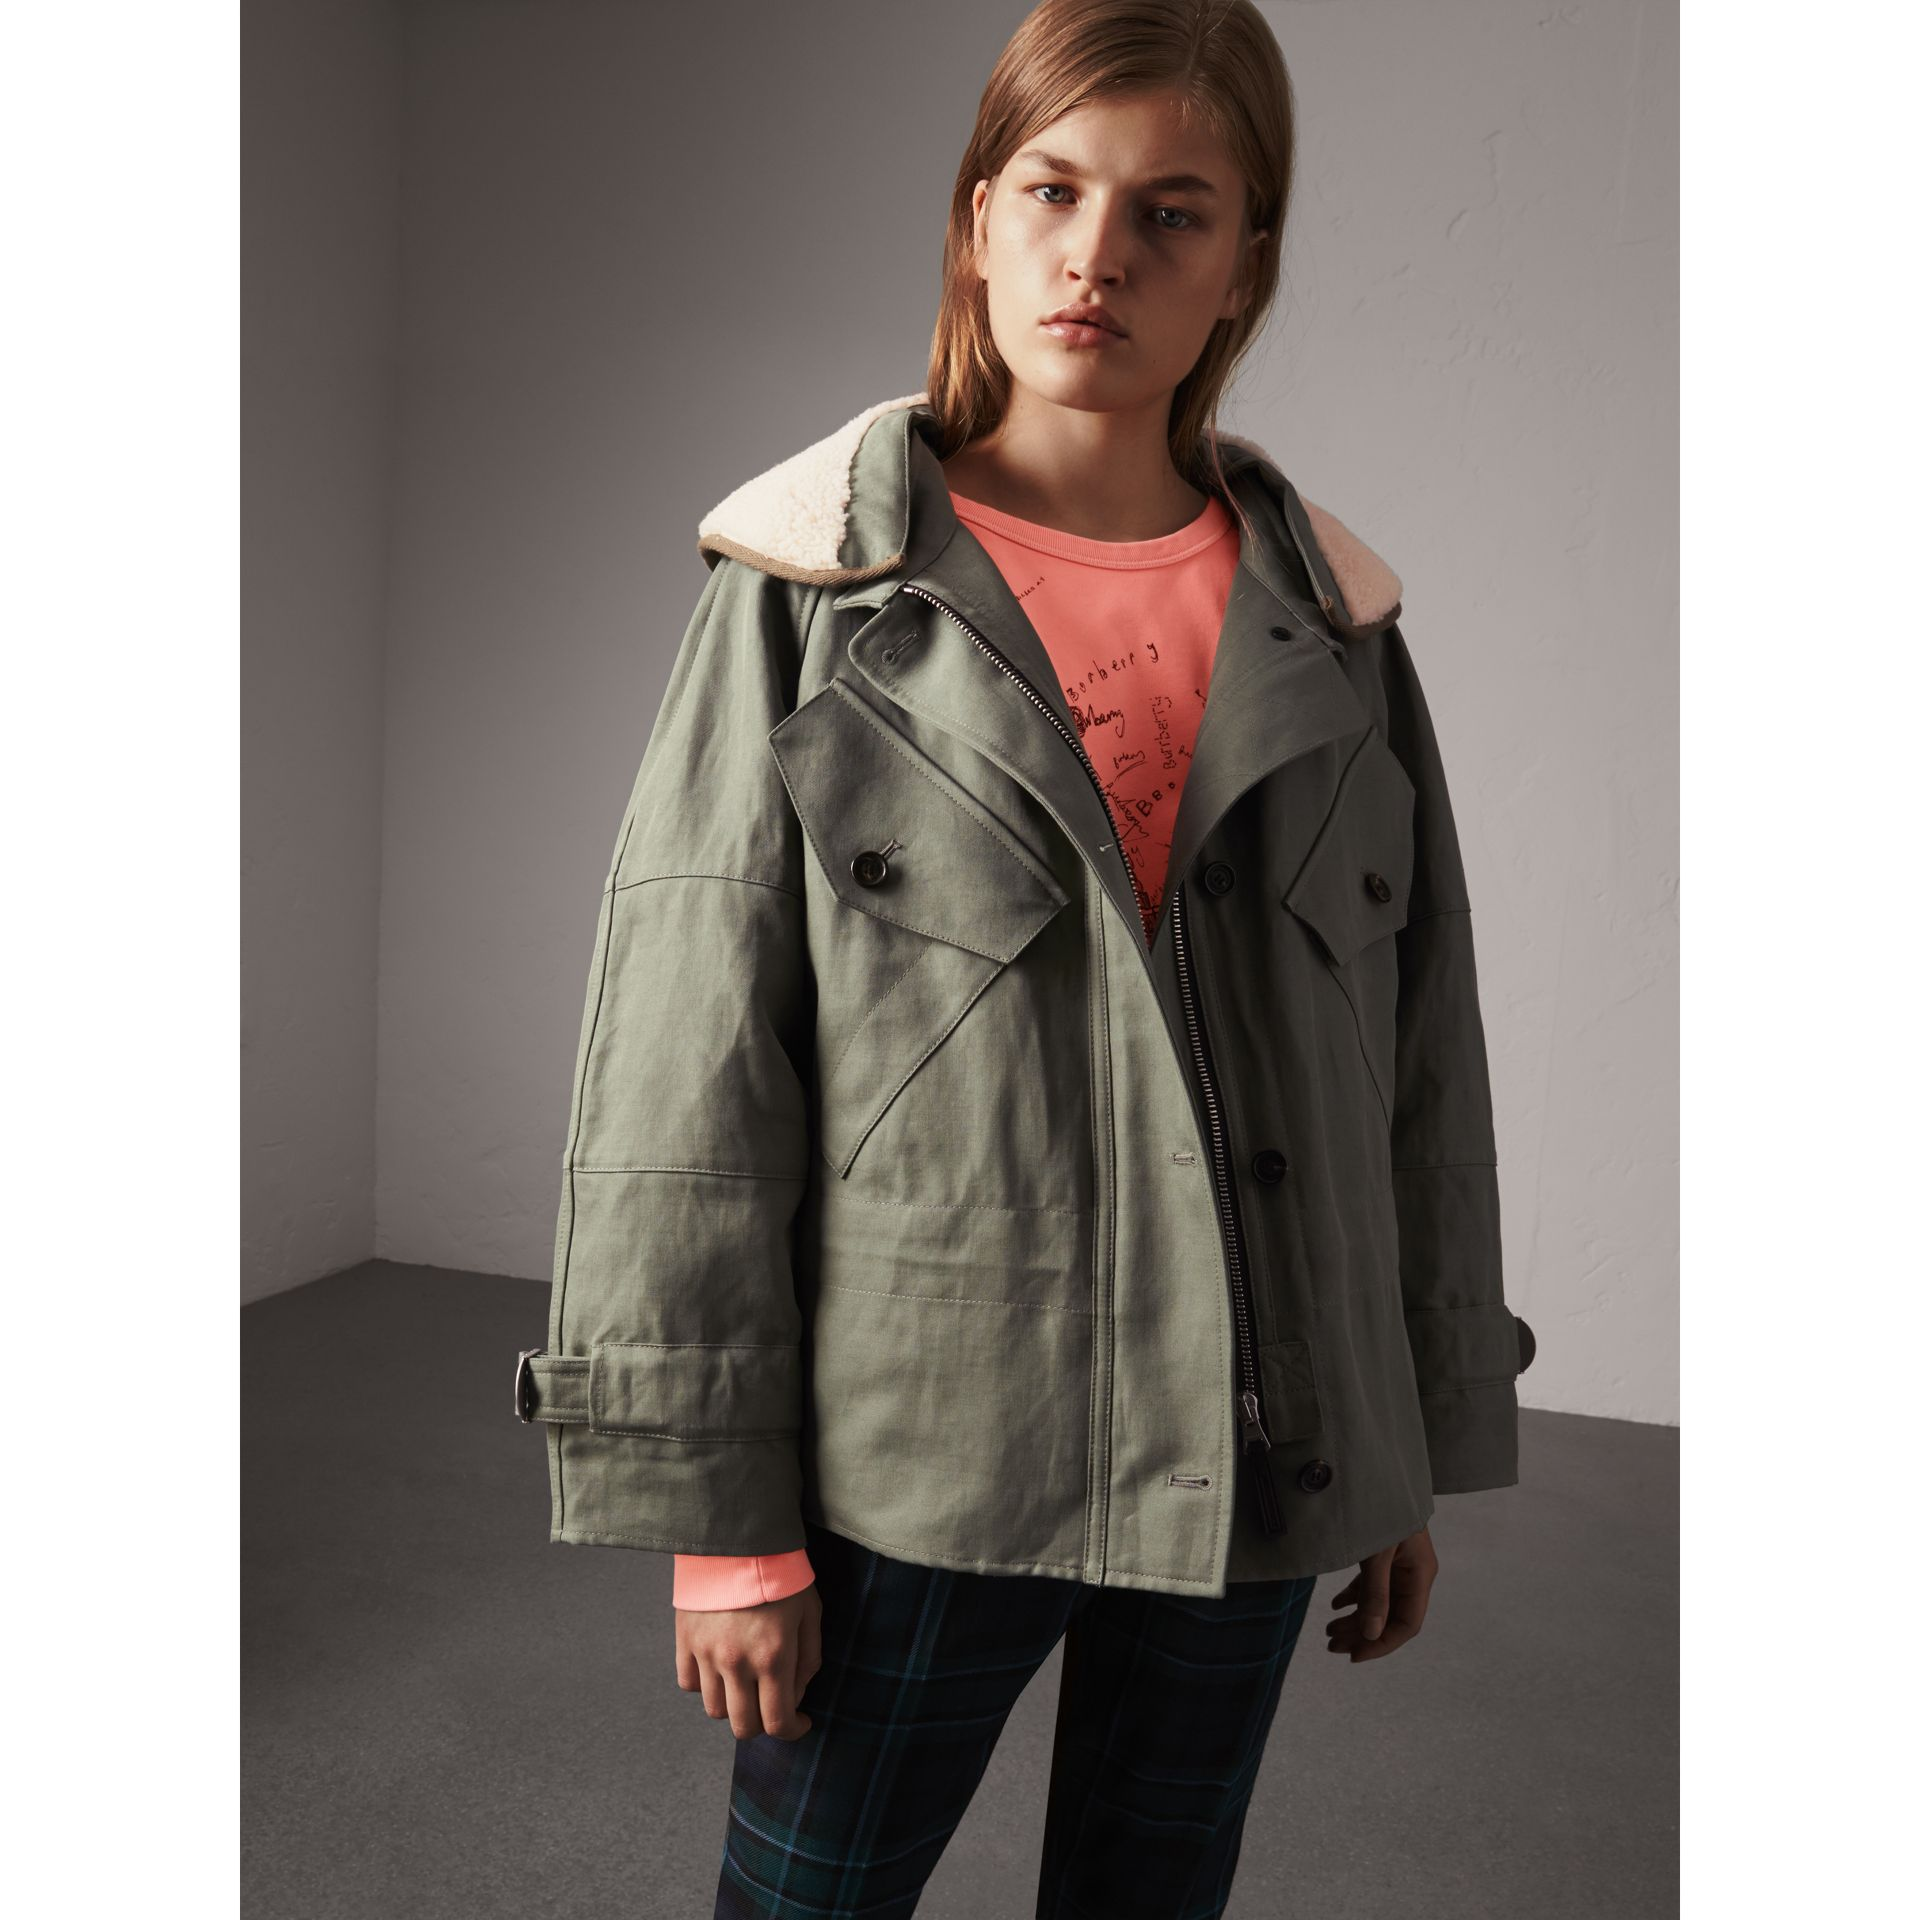 Ramie Cotton Jacket with Shearling Warmer in Slate Green - Women | Burberry United States - gallery image 5